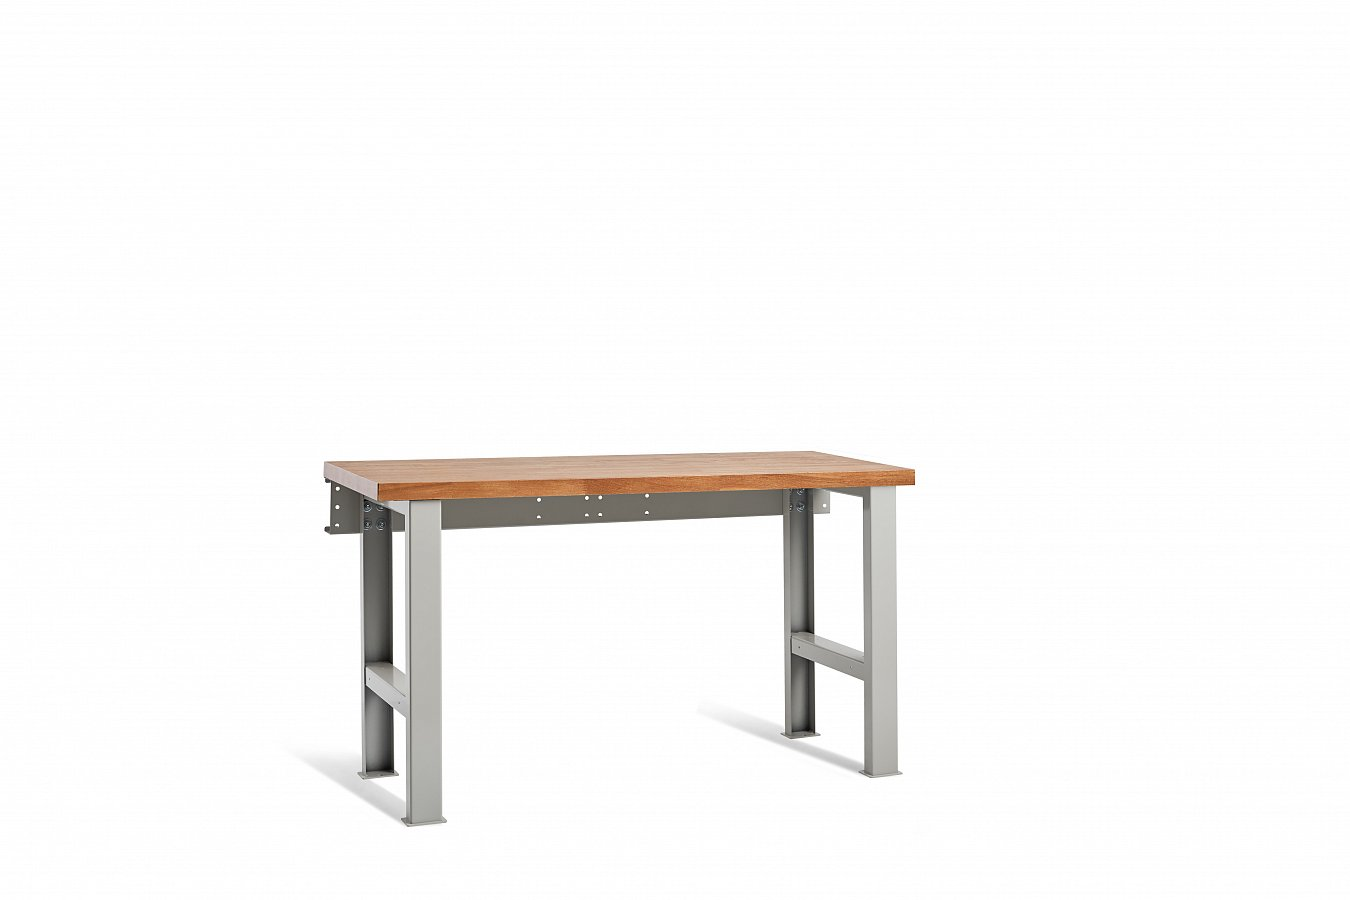 DiKom Workbench VS-150-01 (6)